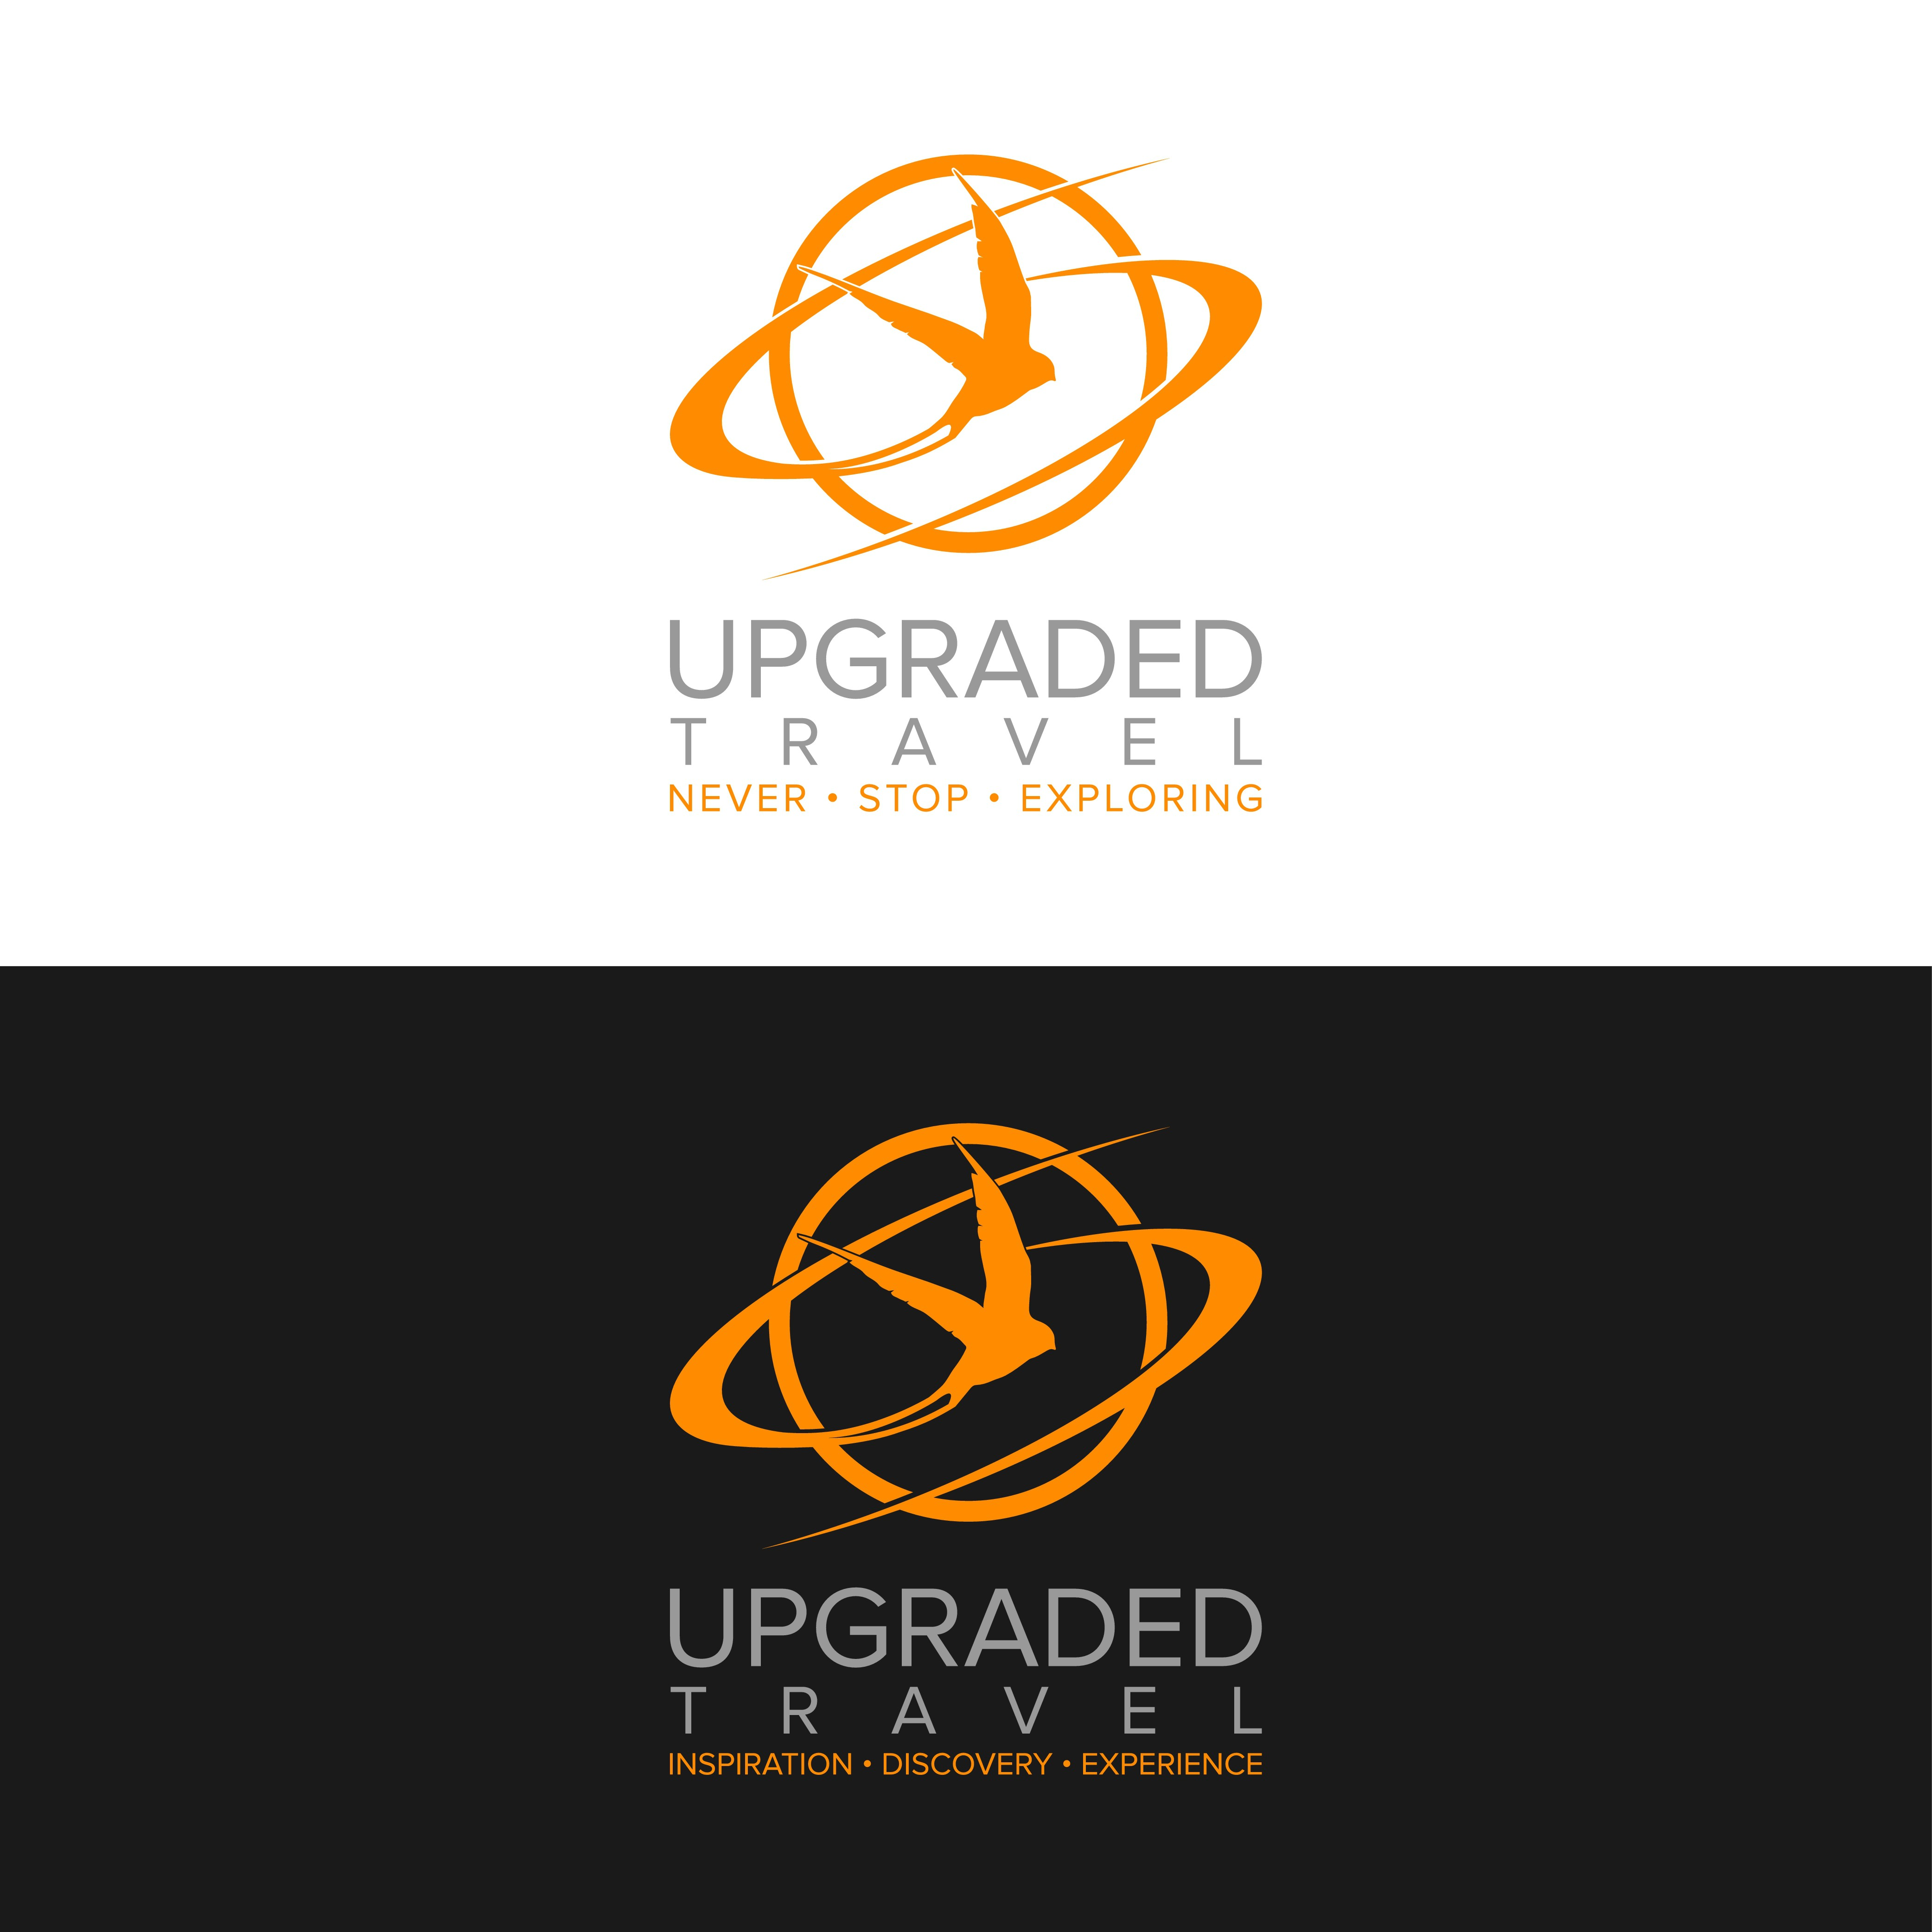 Create a Powerful Logo for an Exciting Travel Company